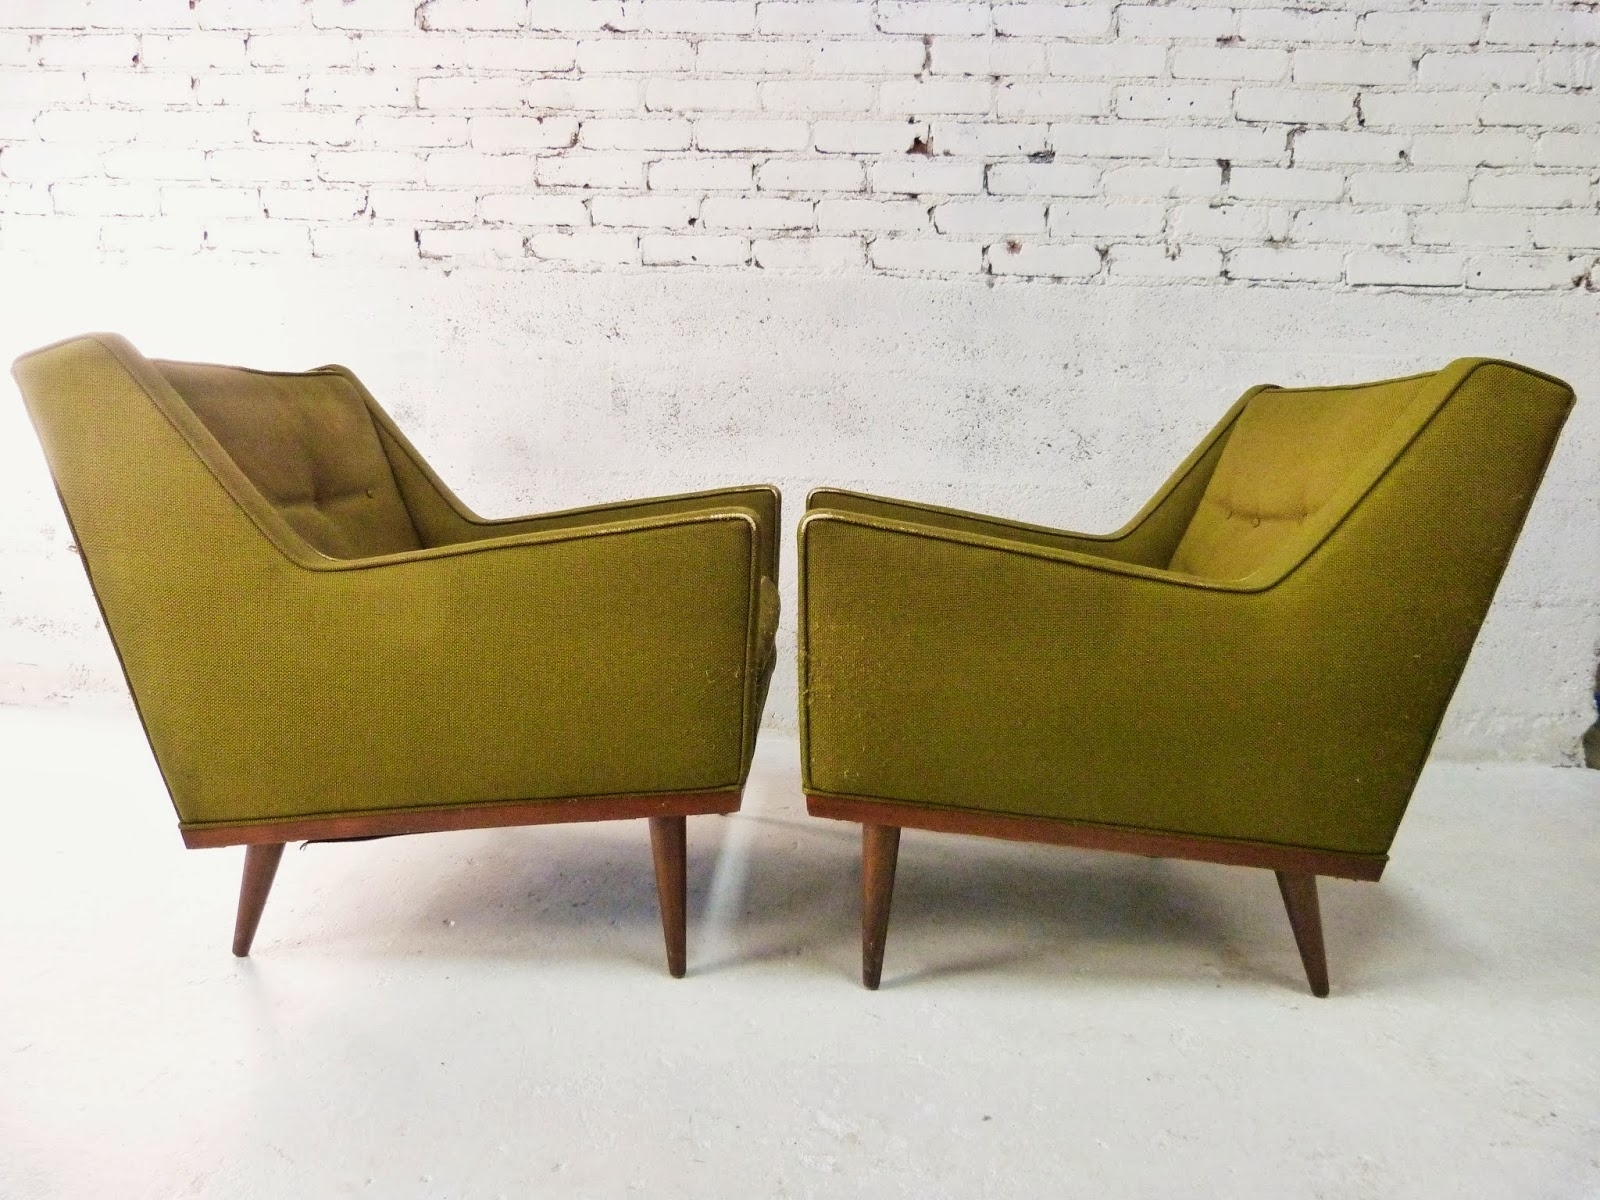 2019 Modern Retro Furniture For Retro Sofas And Chairs (View 6 of 20)